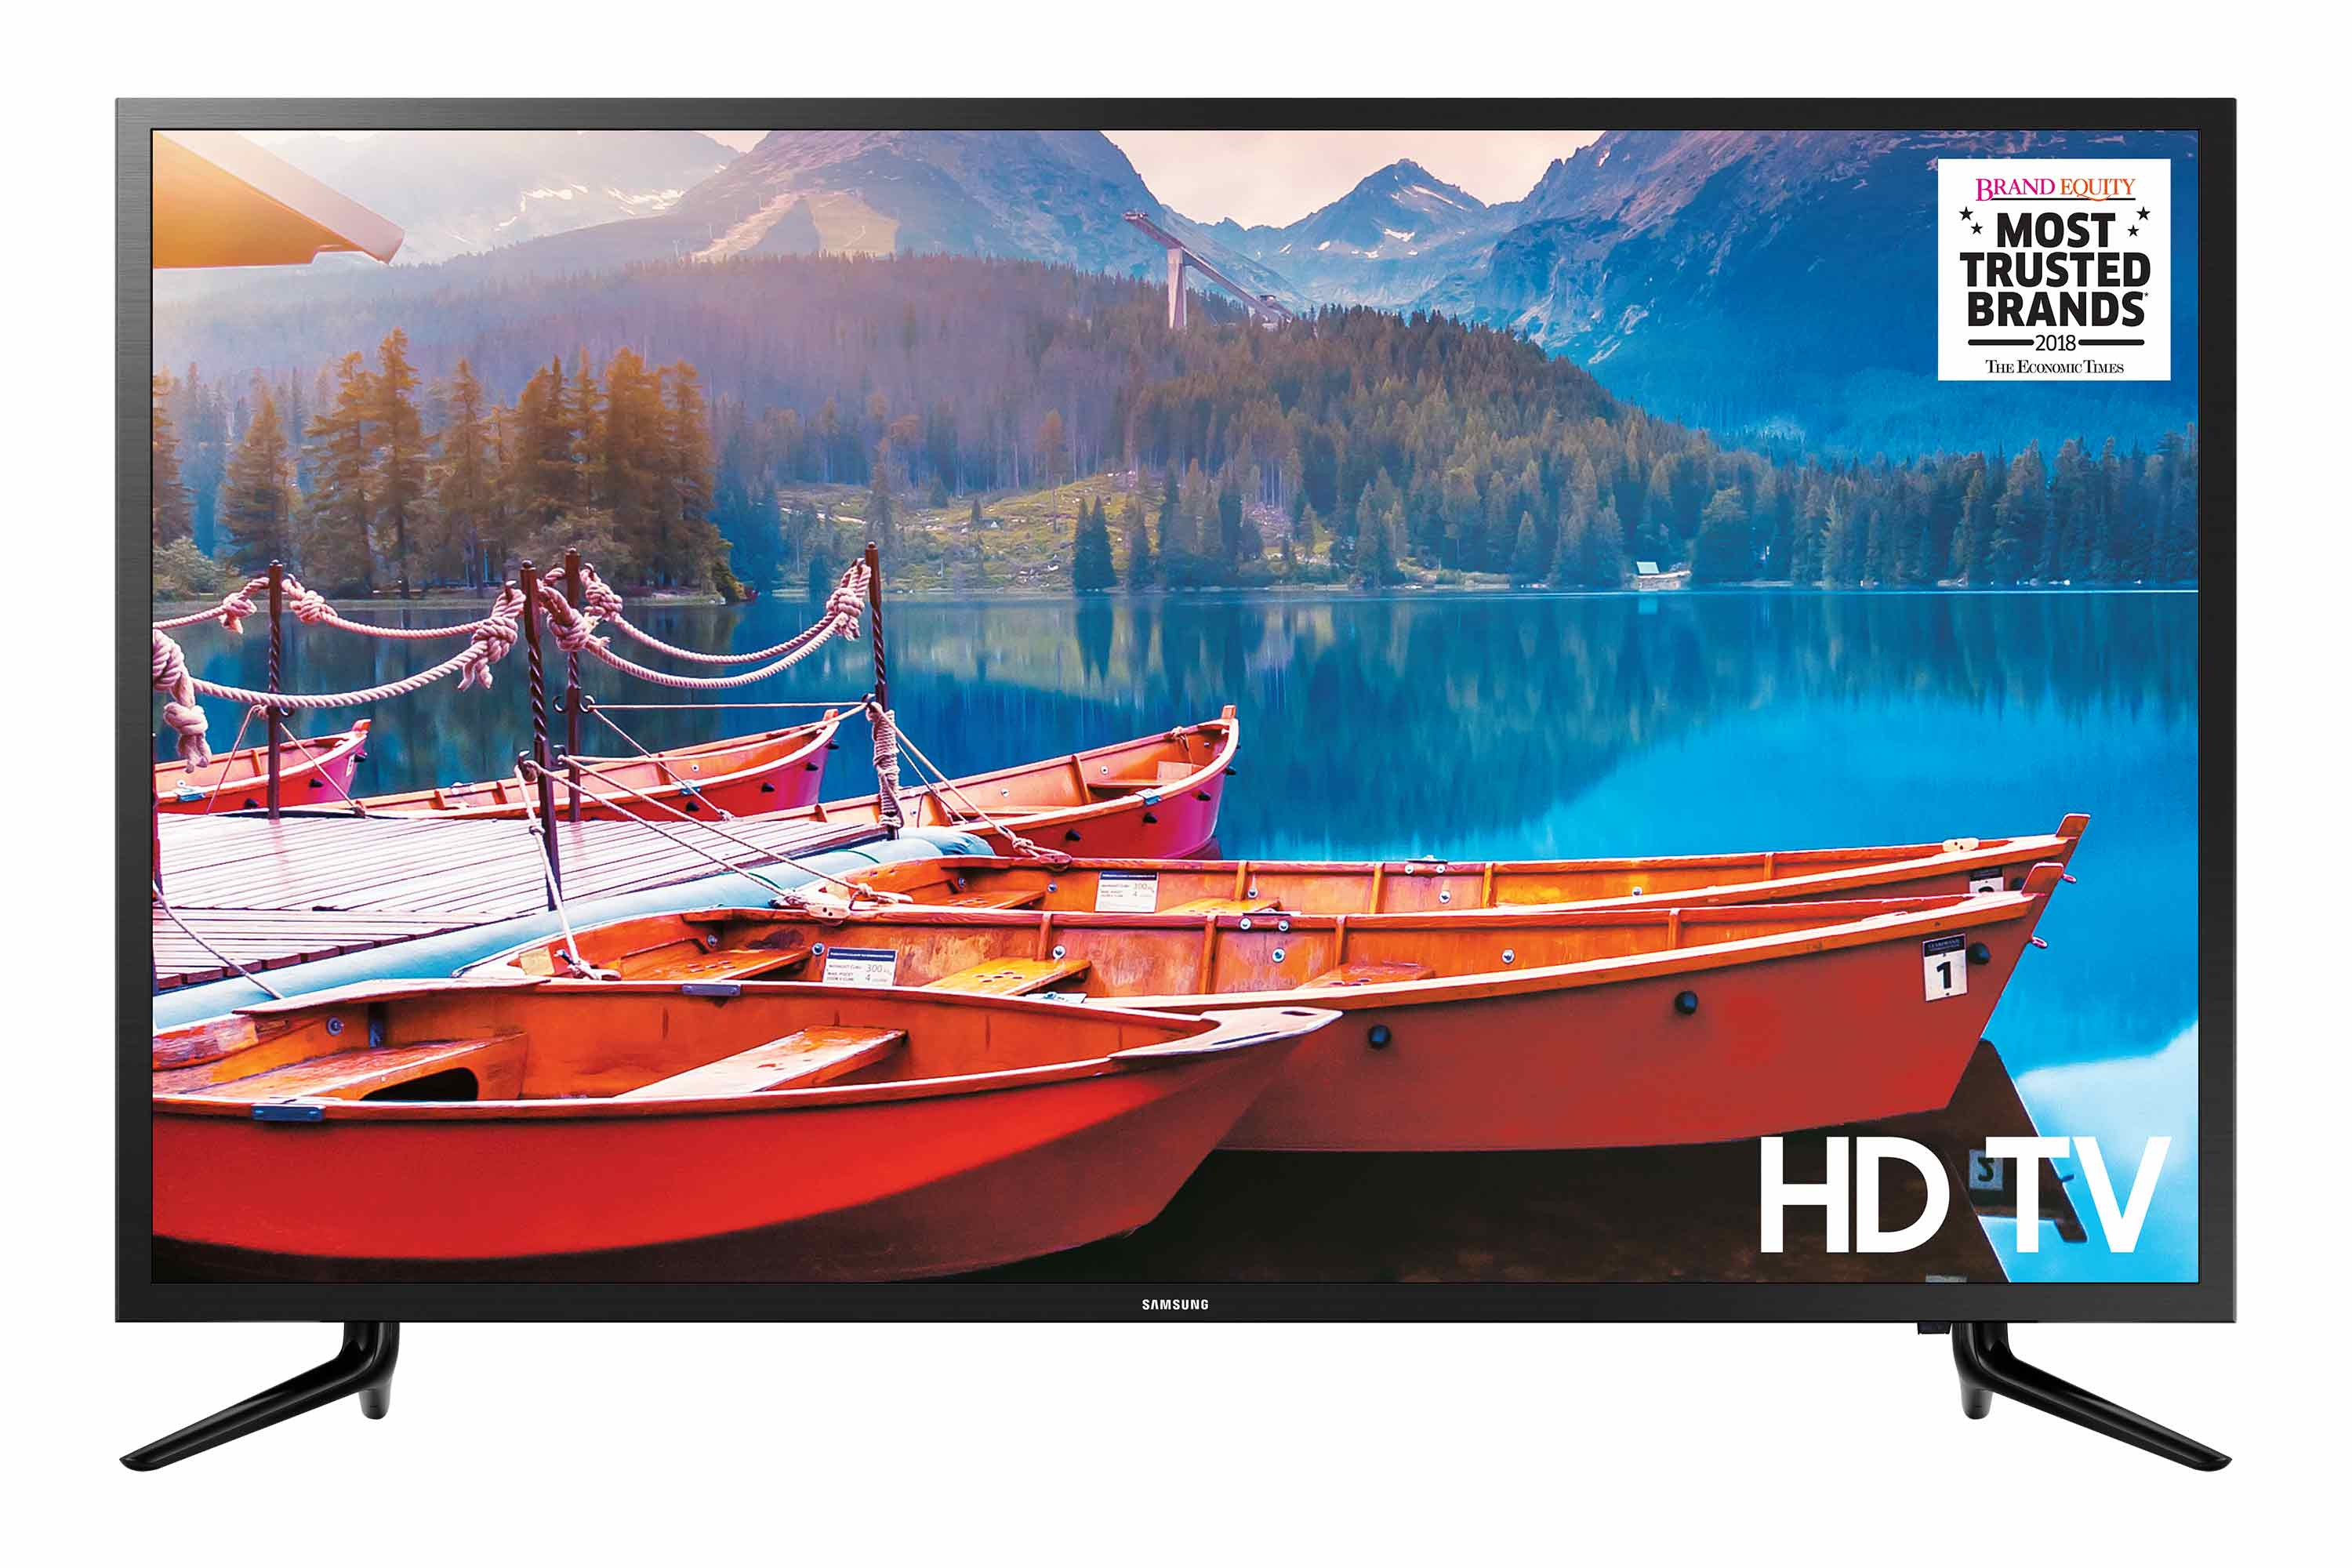 Samsung 32 Inch (80cm) 4010 HD Ready LED TV